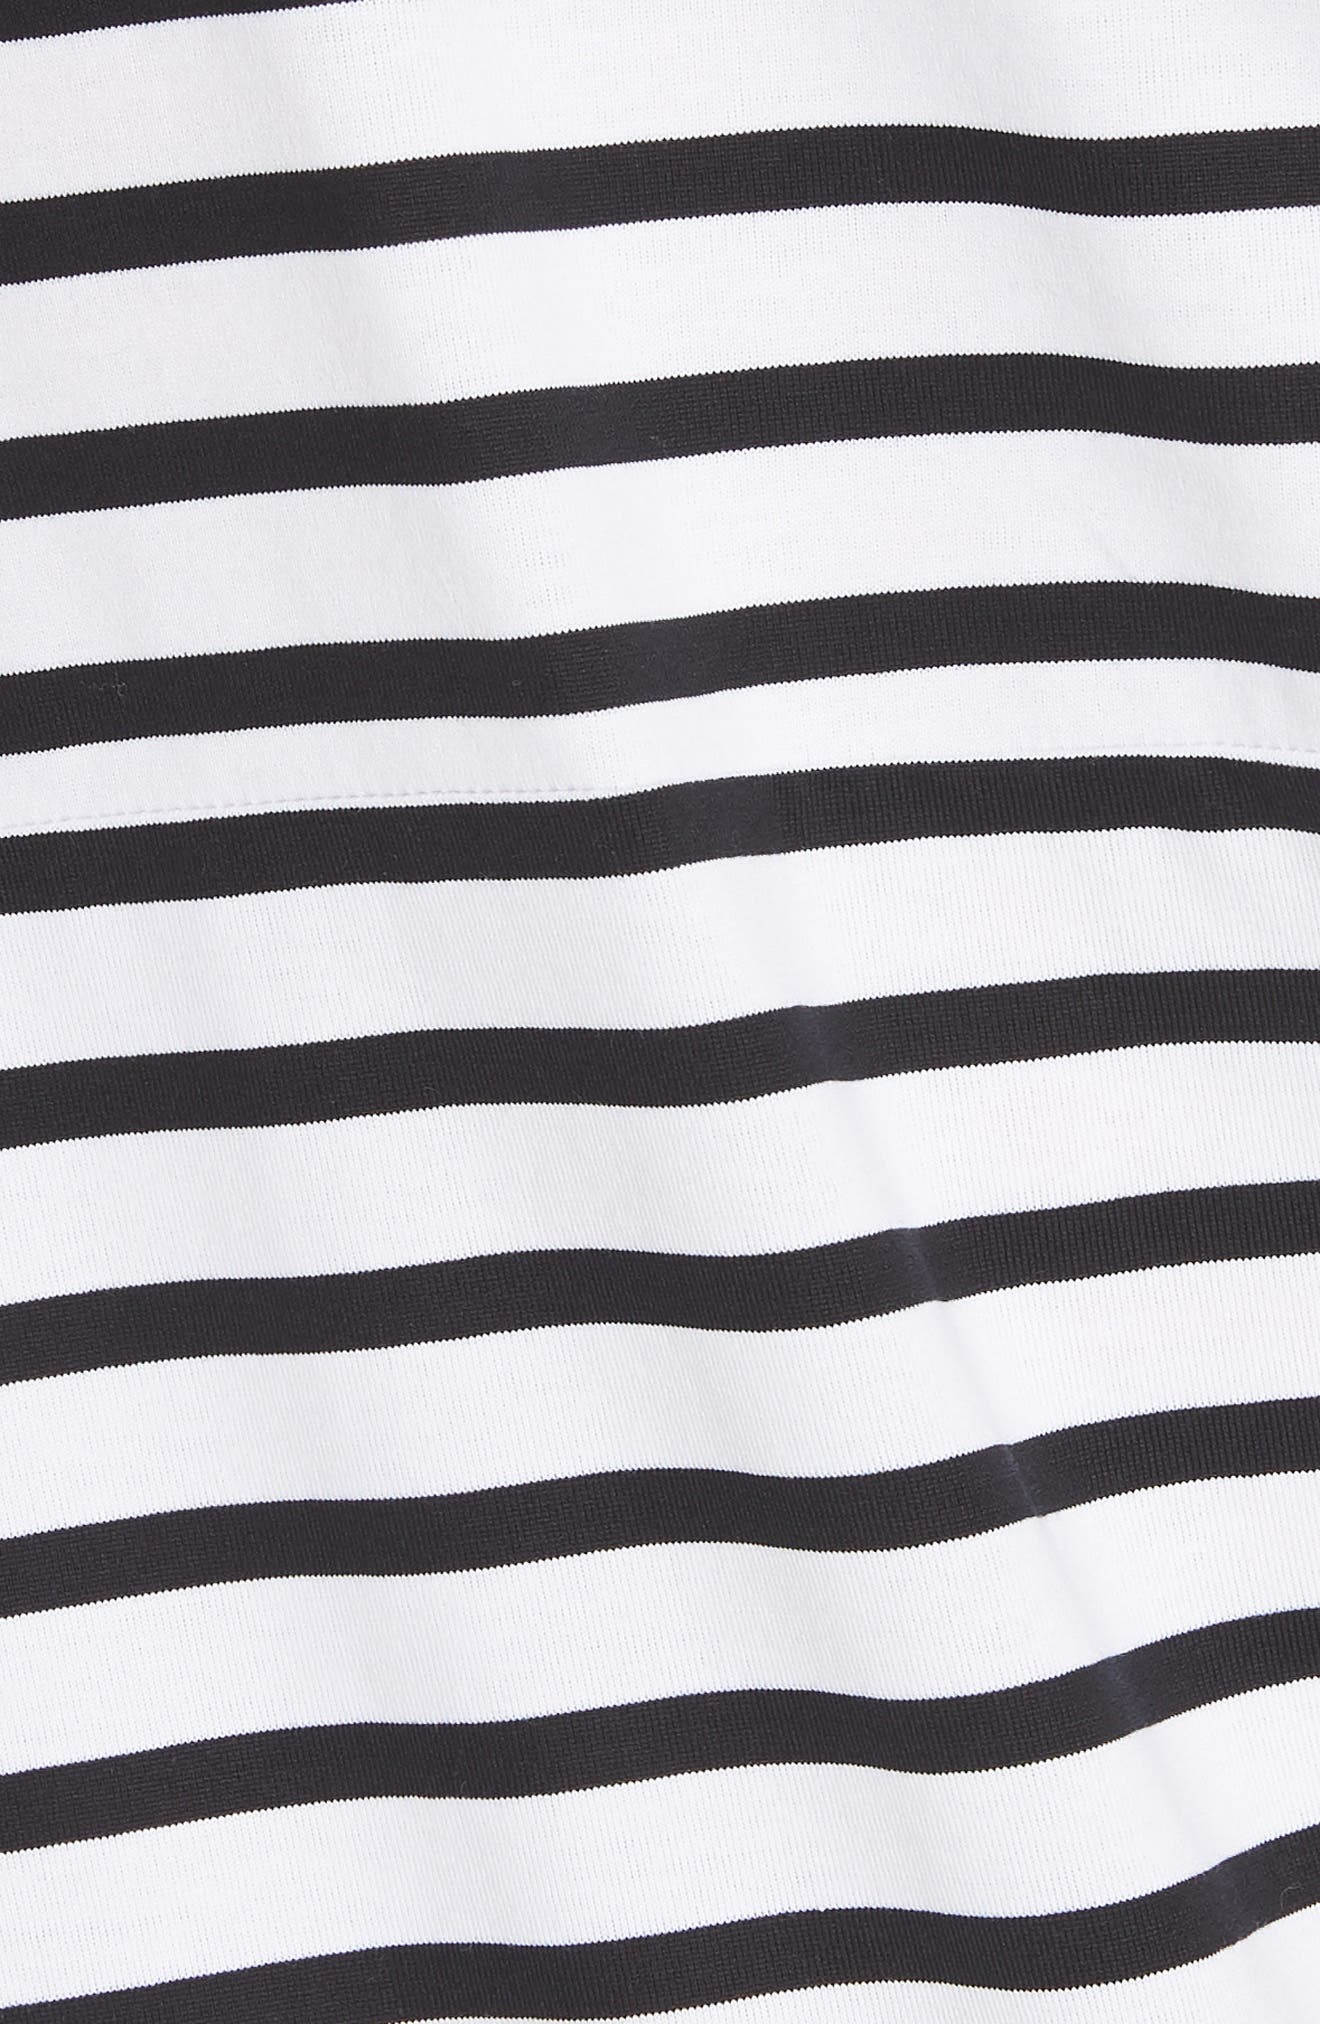 Asymmetrical Stripe Dress,                             Alternate thumbnail 5, color,                             White/ Black